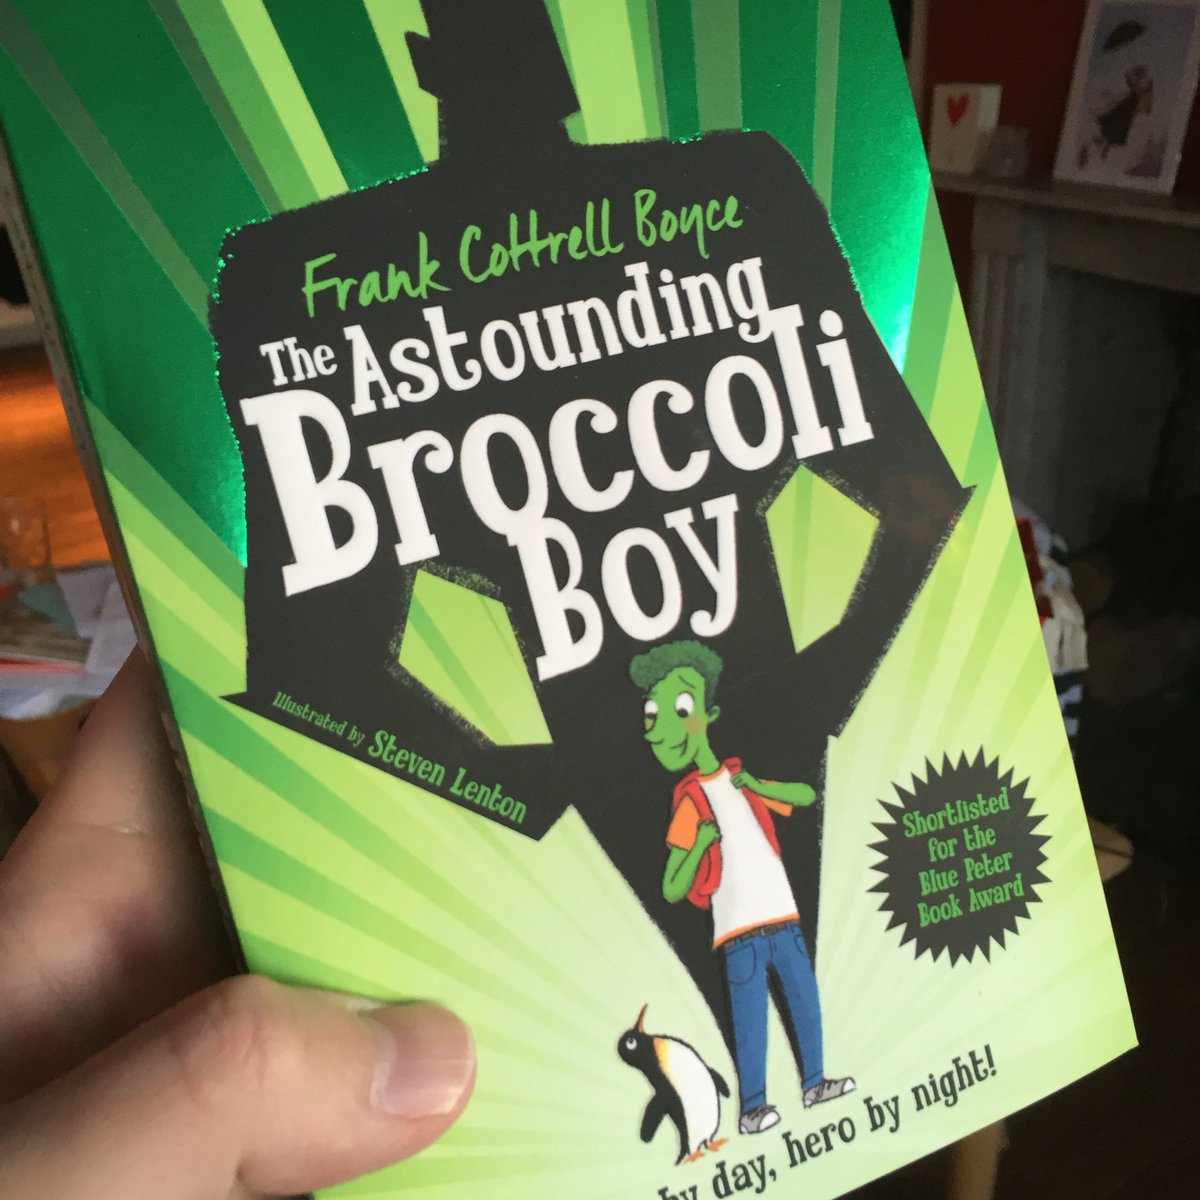 To celebrate our paperback publication day I'm giving away a dual-signed copy of Broccoli Boy! Like & RT to enter